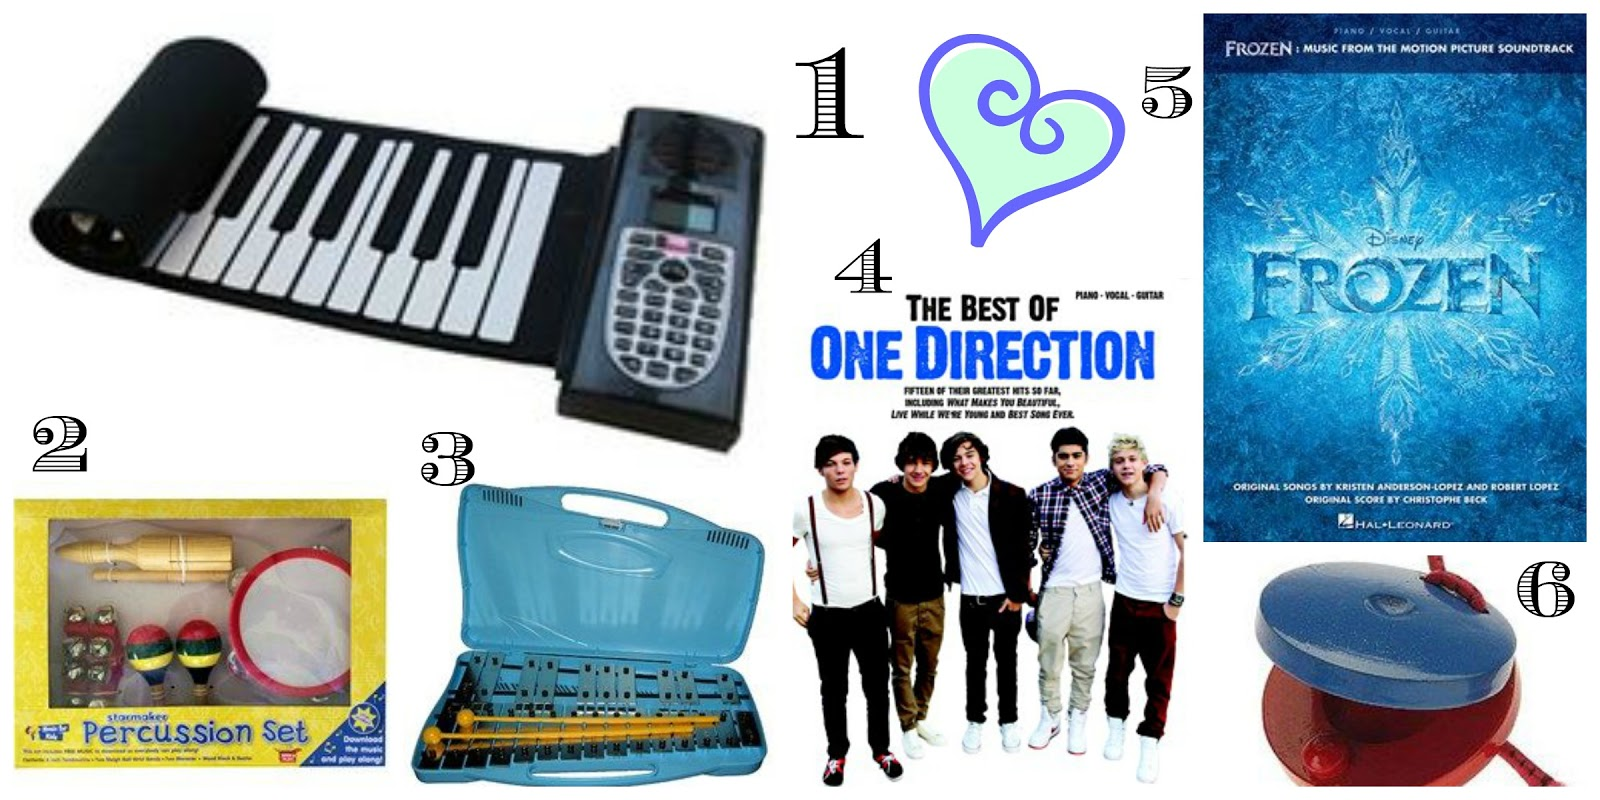 The Definitive Music-Related Gift Guide